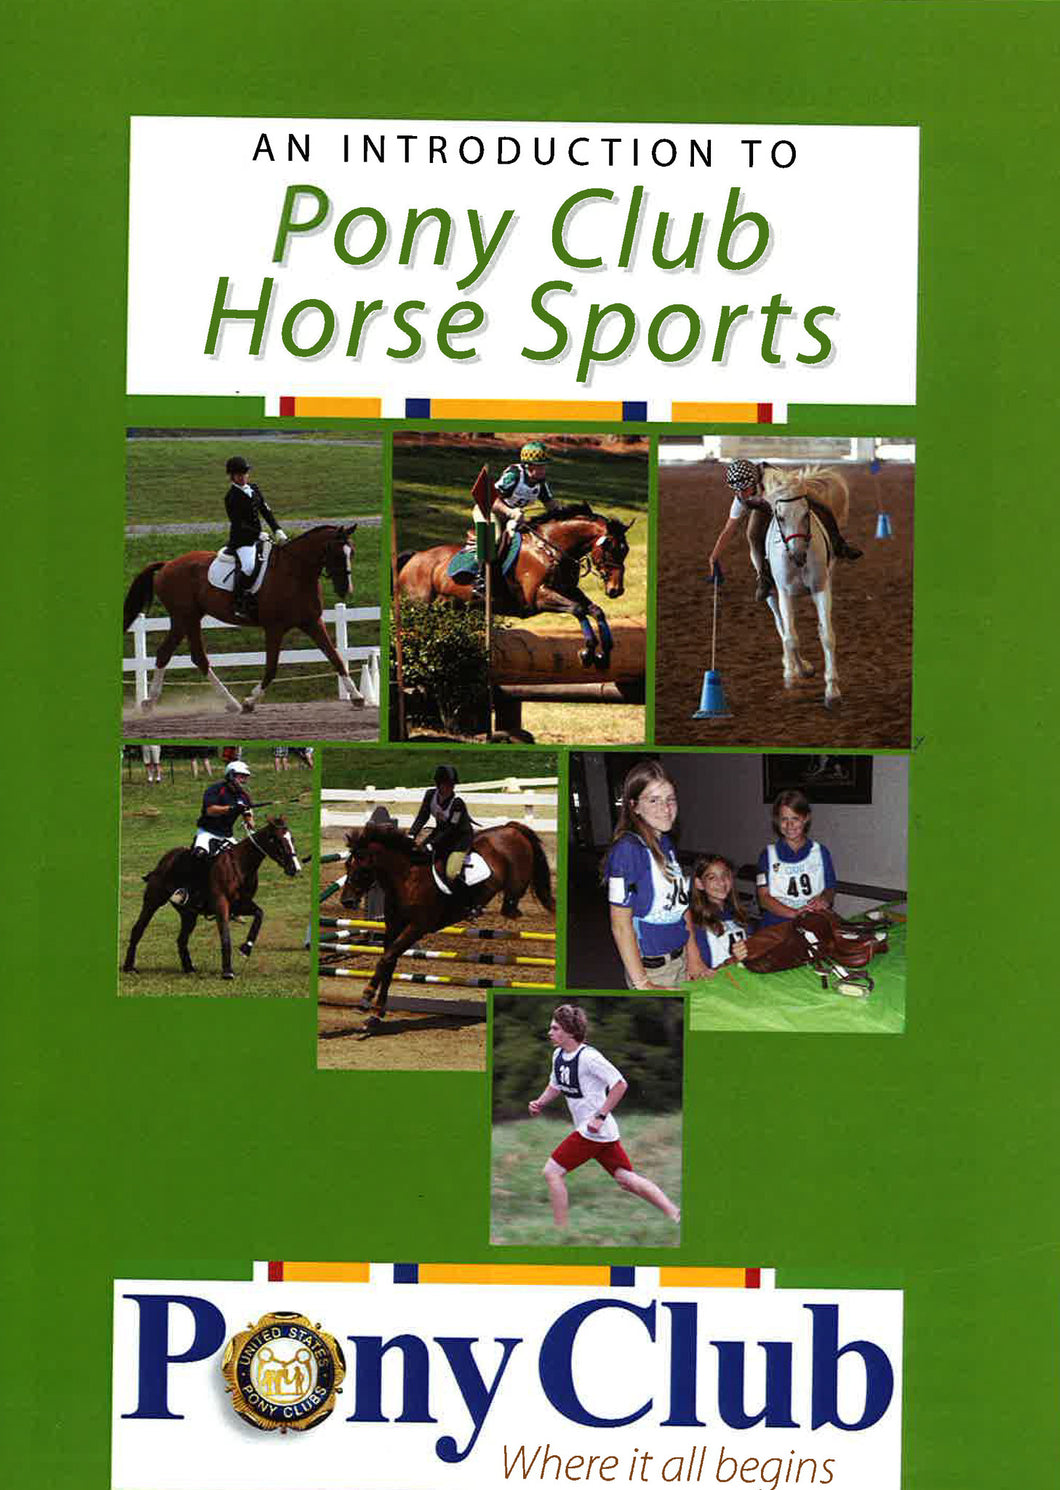 An Introduction to Pony Club Horse Sports